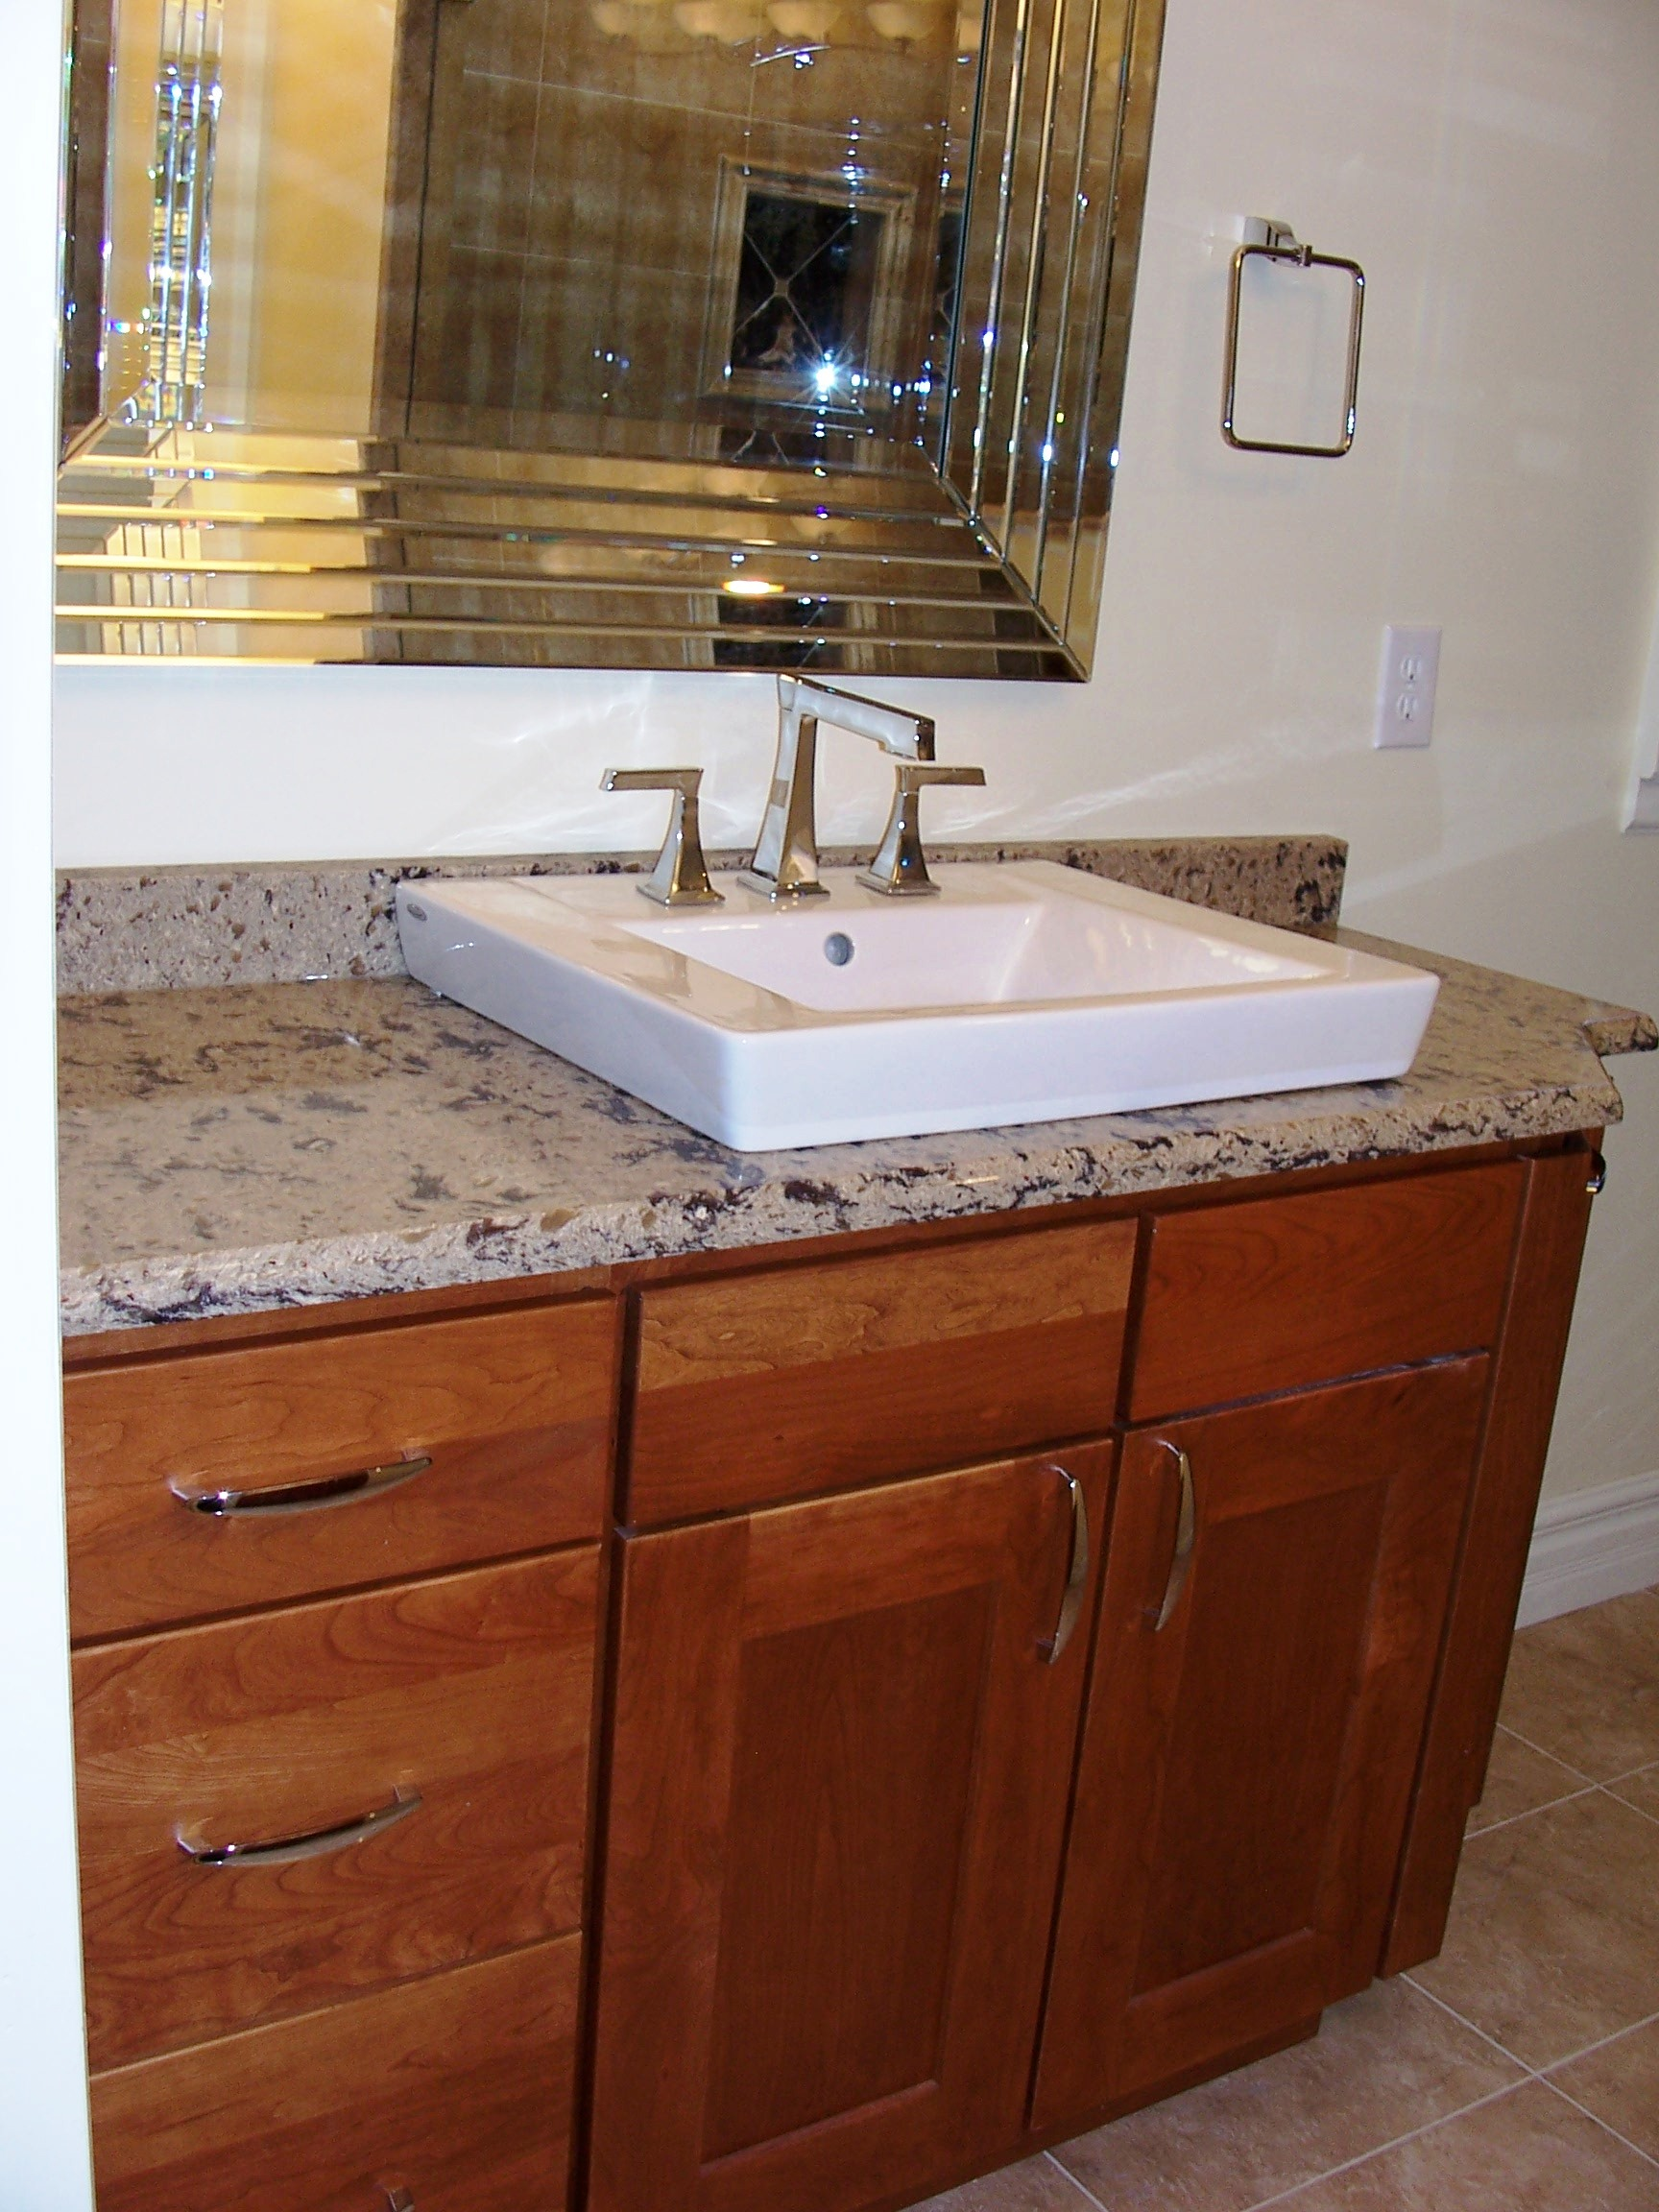 bathroom vanities johnson city tn kitchen and bath blab modern supplys kitchen bath - Bathroom Remodel Kingsport Tn